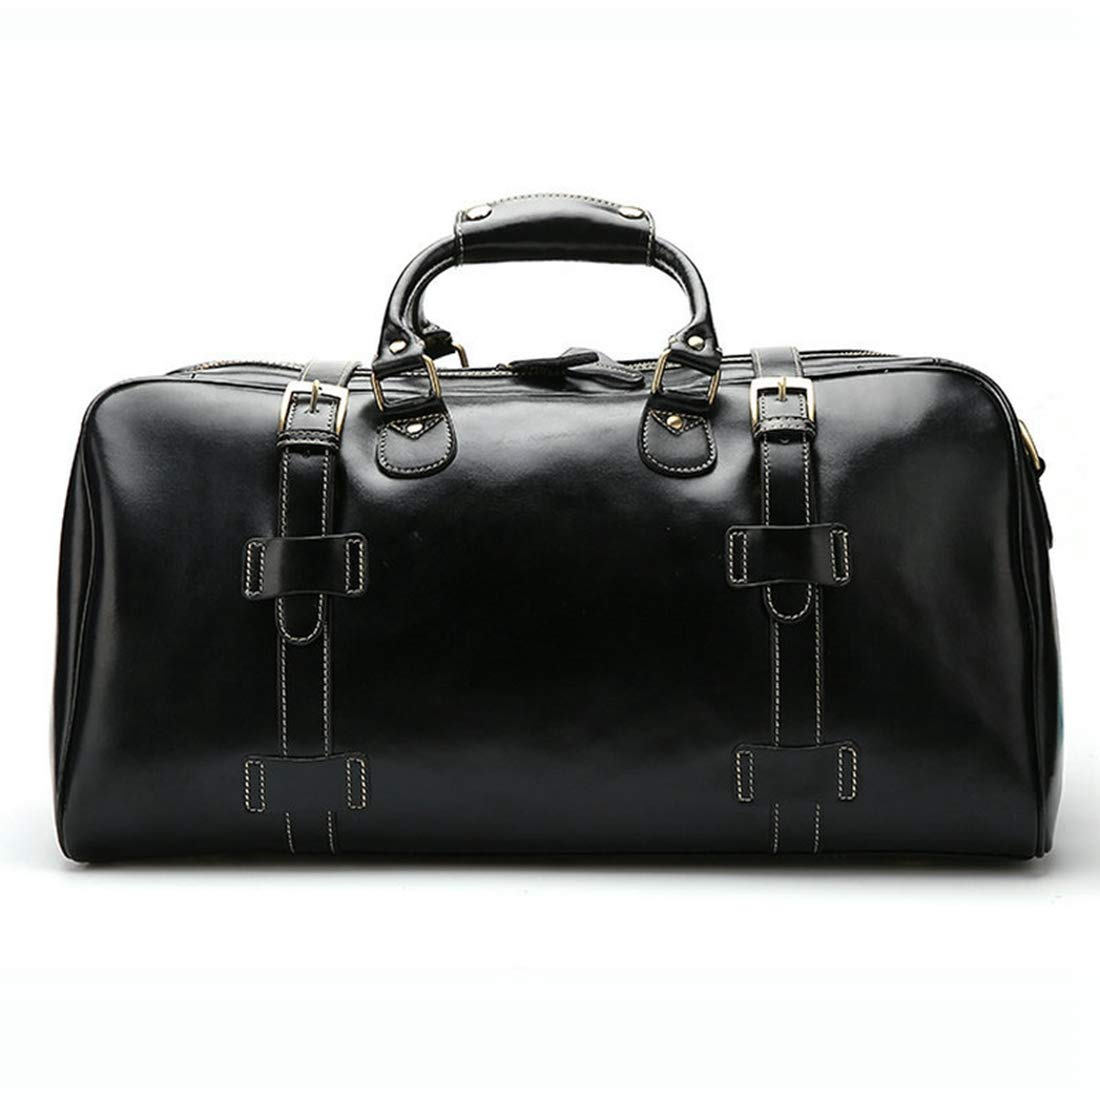 Color : Black RABILTY Business Hand Luggage Leather Travel Bag Large Capacity Short Trip Travel Duffel Holdall Bag for Men